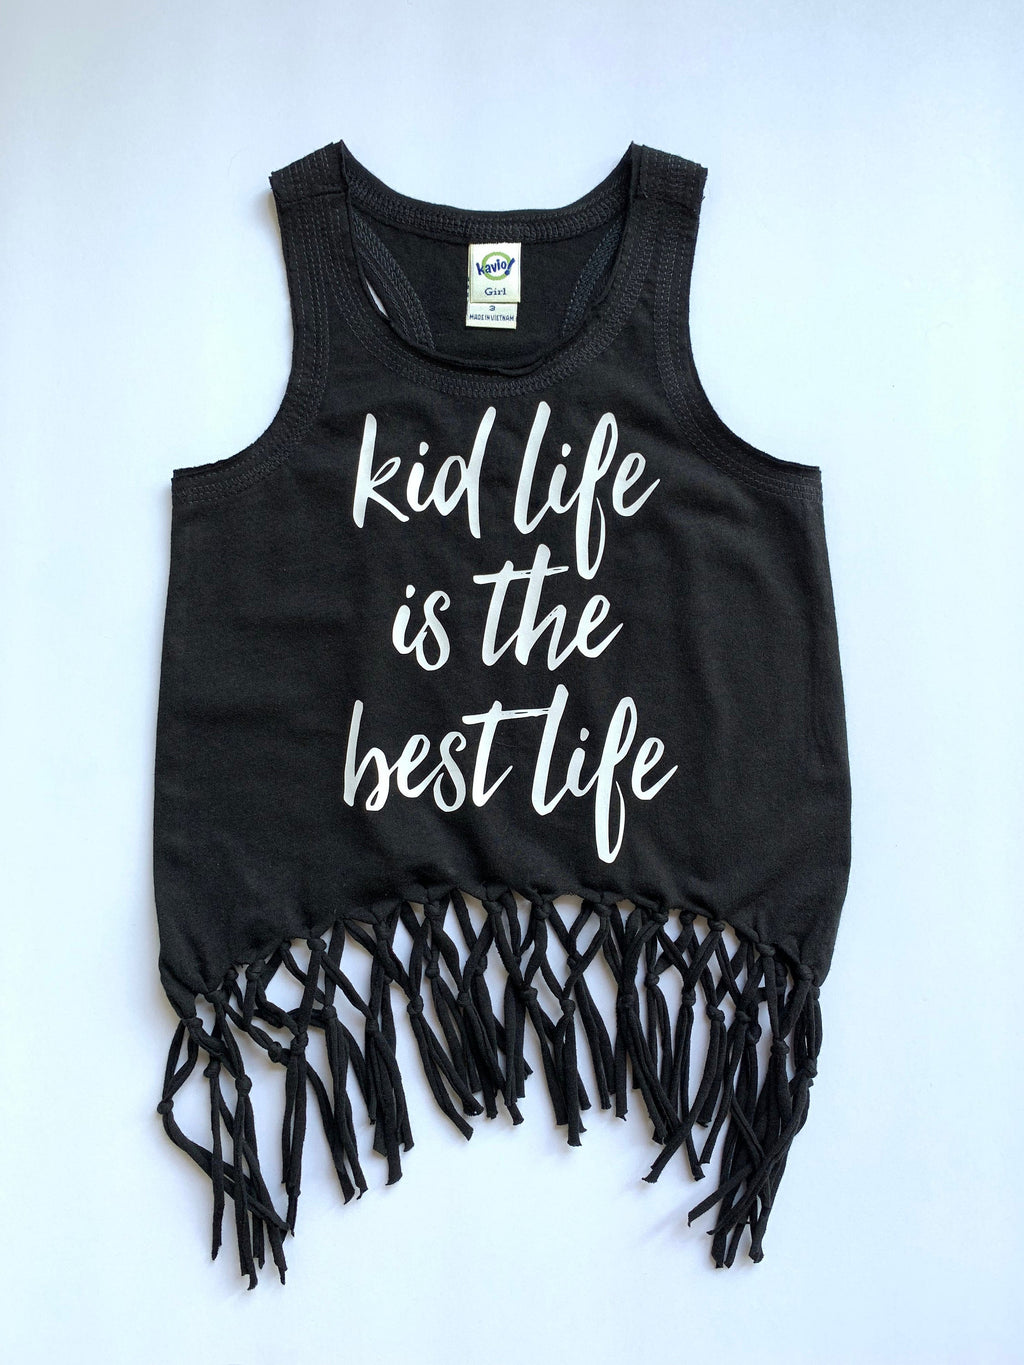 Kid Life is the Best Life Racerback Fringe Tank Top -  Monochrome Black and White Boho Belly Girls Shirt - Kids Summer Top